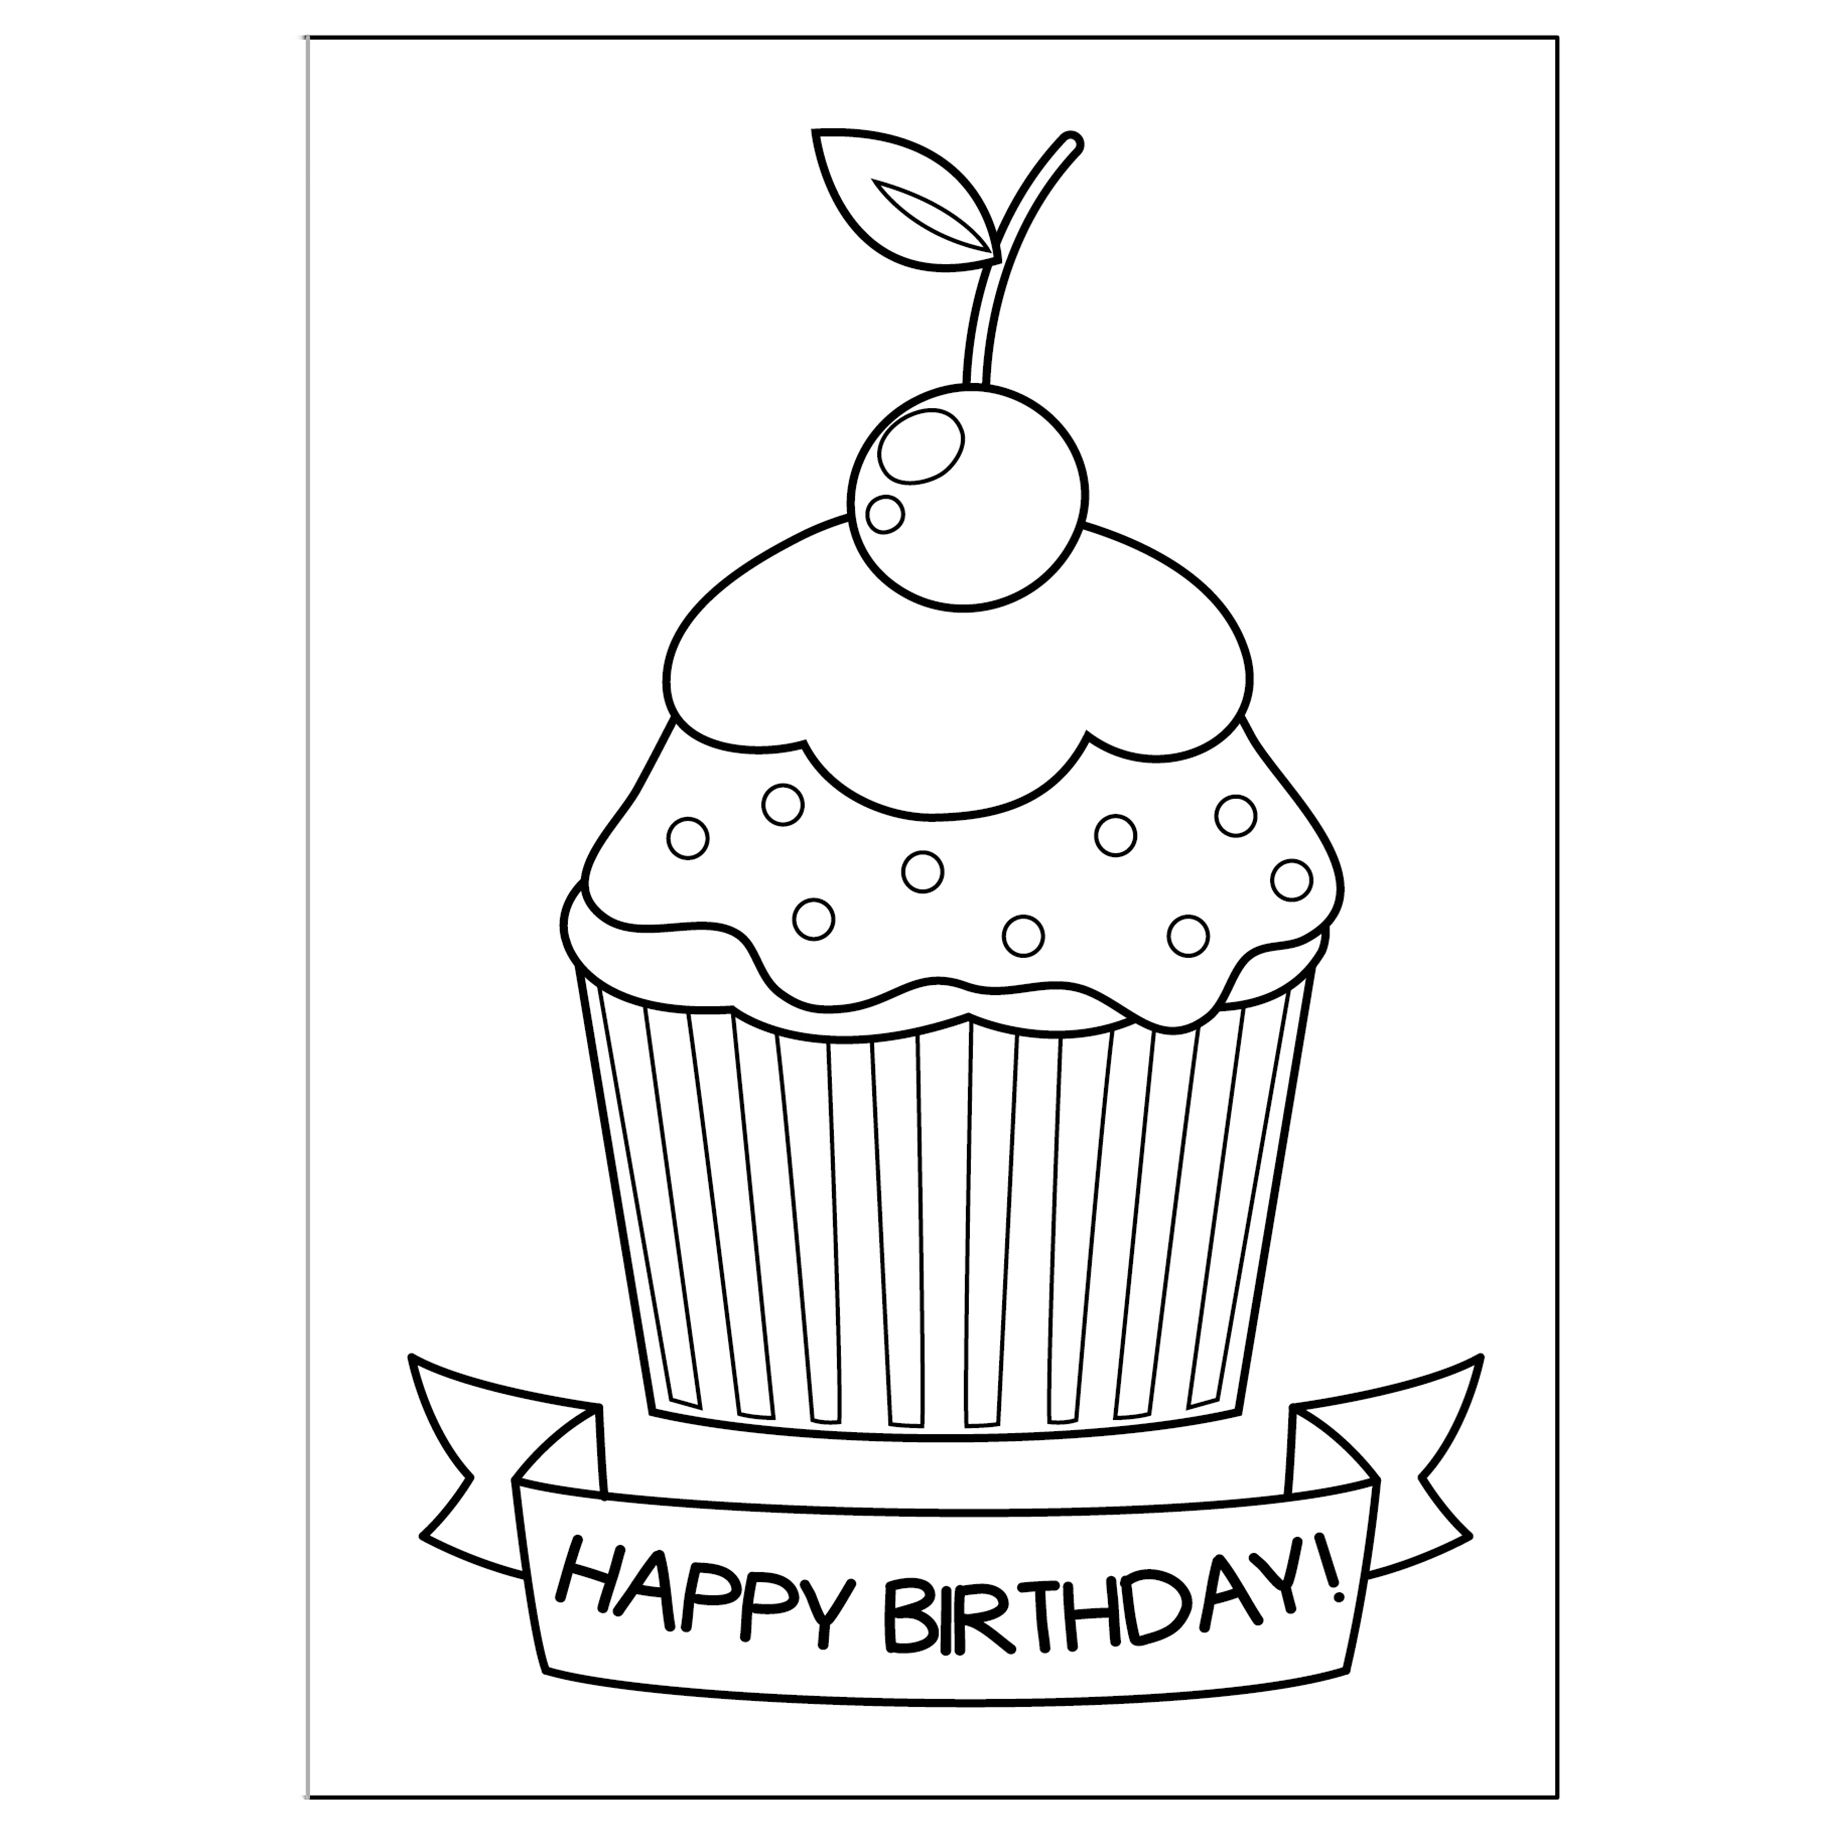 Cute Greeting Cards To Print And Color Happy Birthday Printable